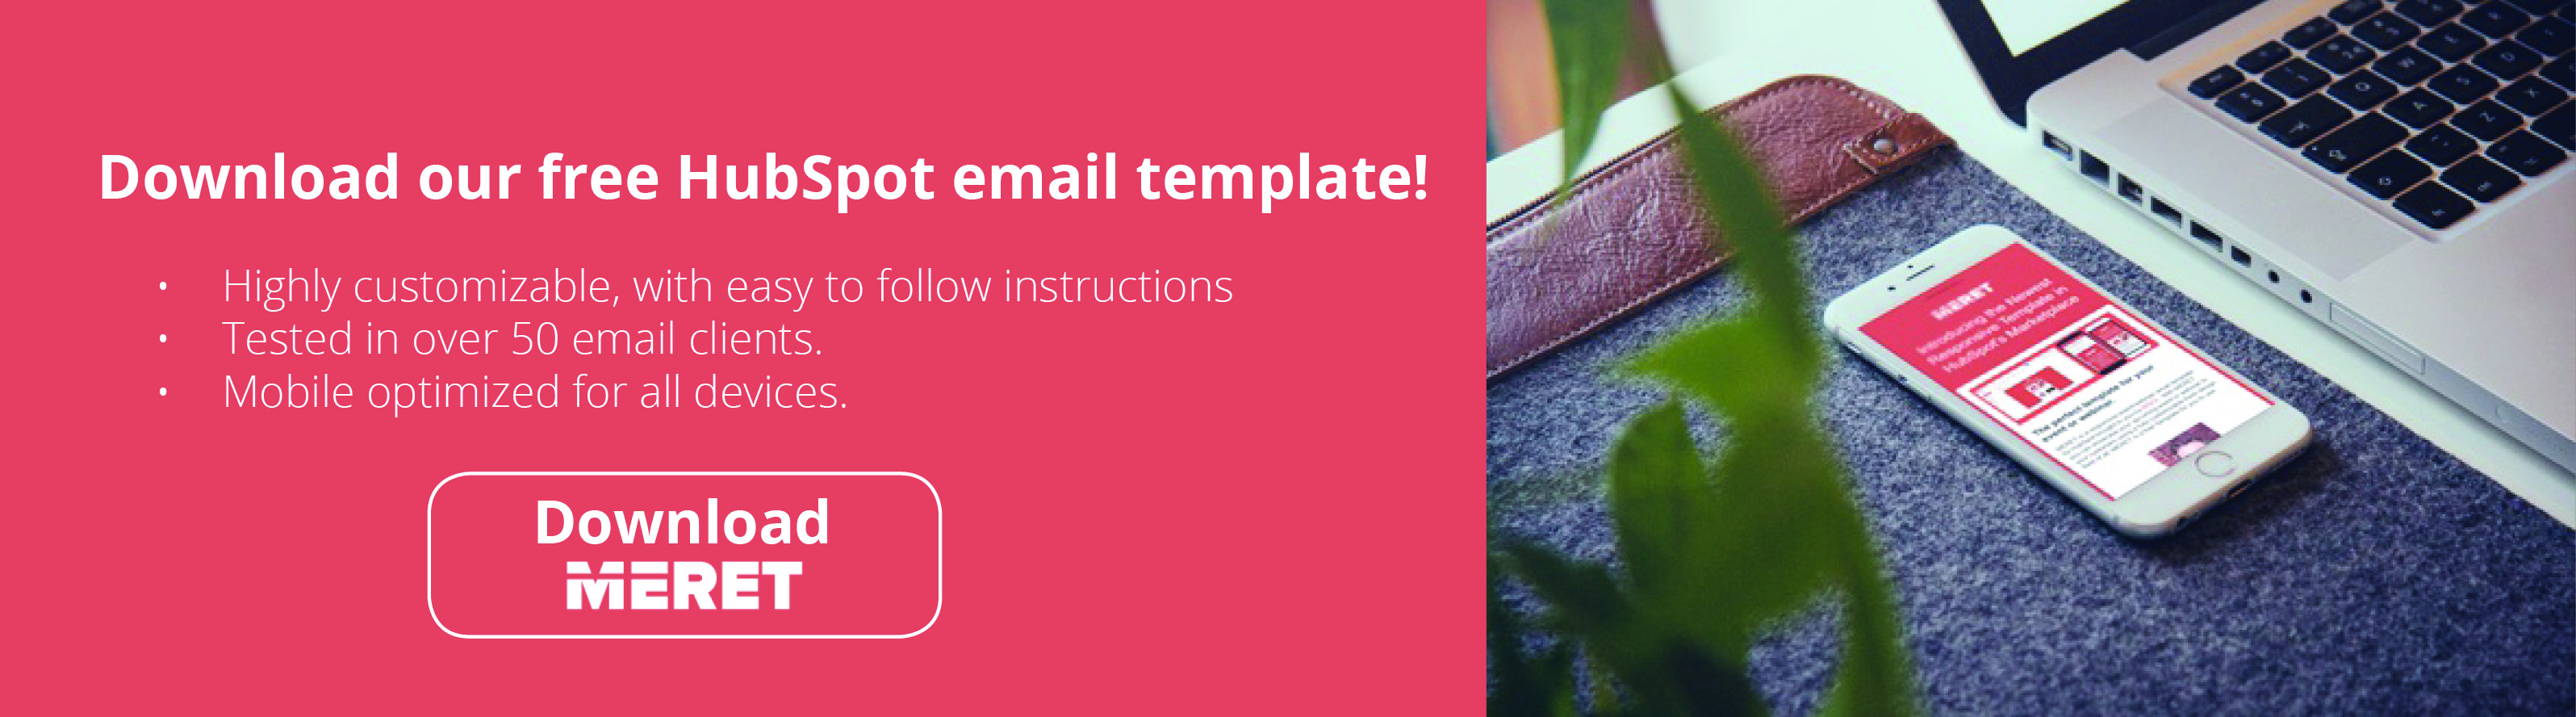 Download our free HubSpot email template!